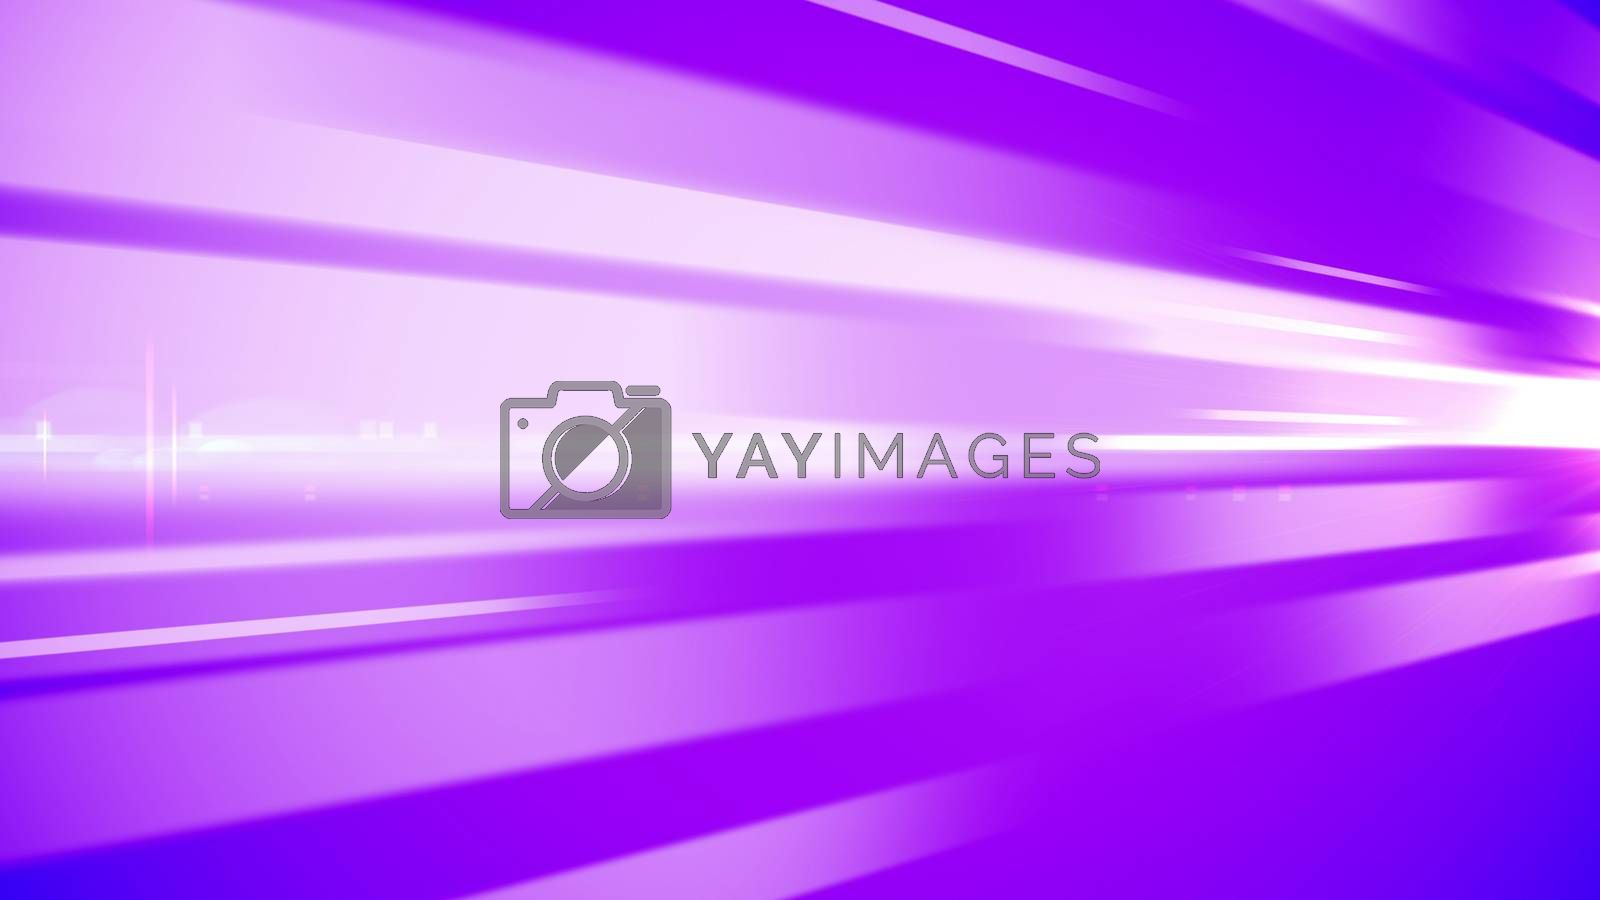 An abstract 3d rendering ofviolet and white bar lines rousing people for dreaming getaways and spontaneous decisions. The picture has a psychodelic effect.